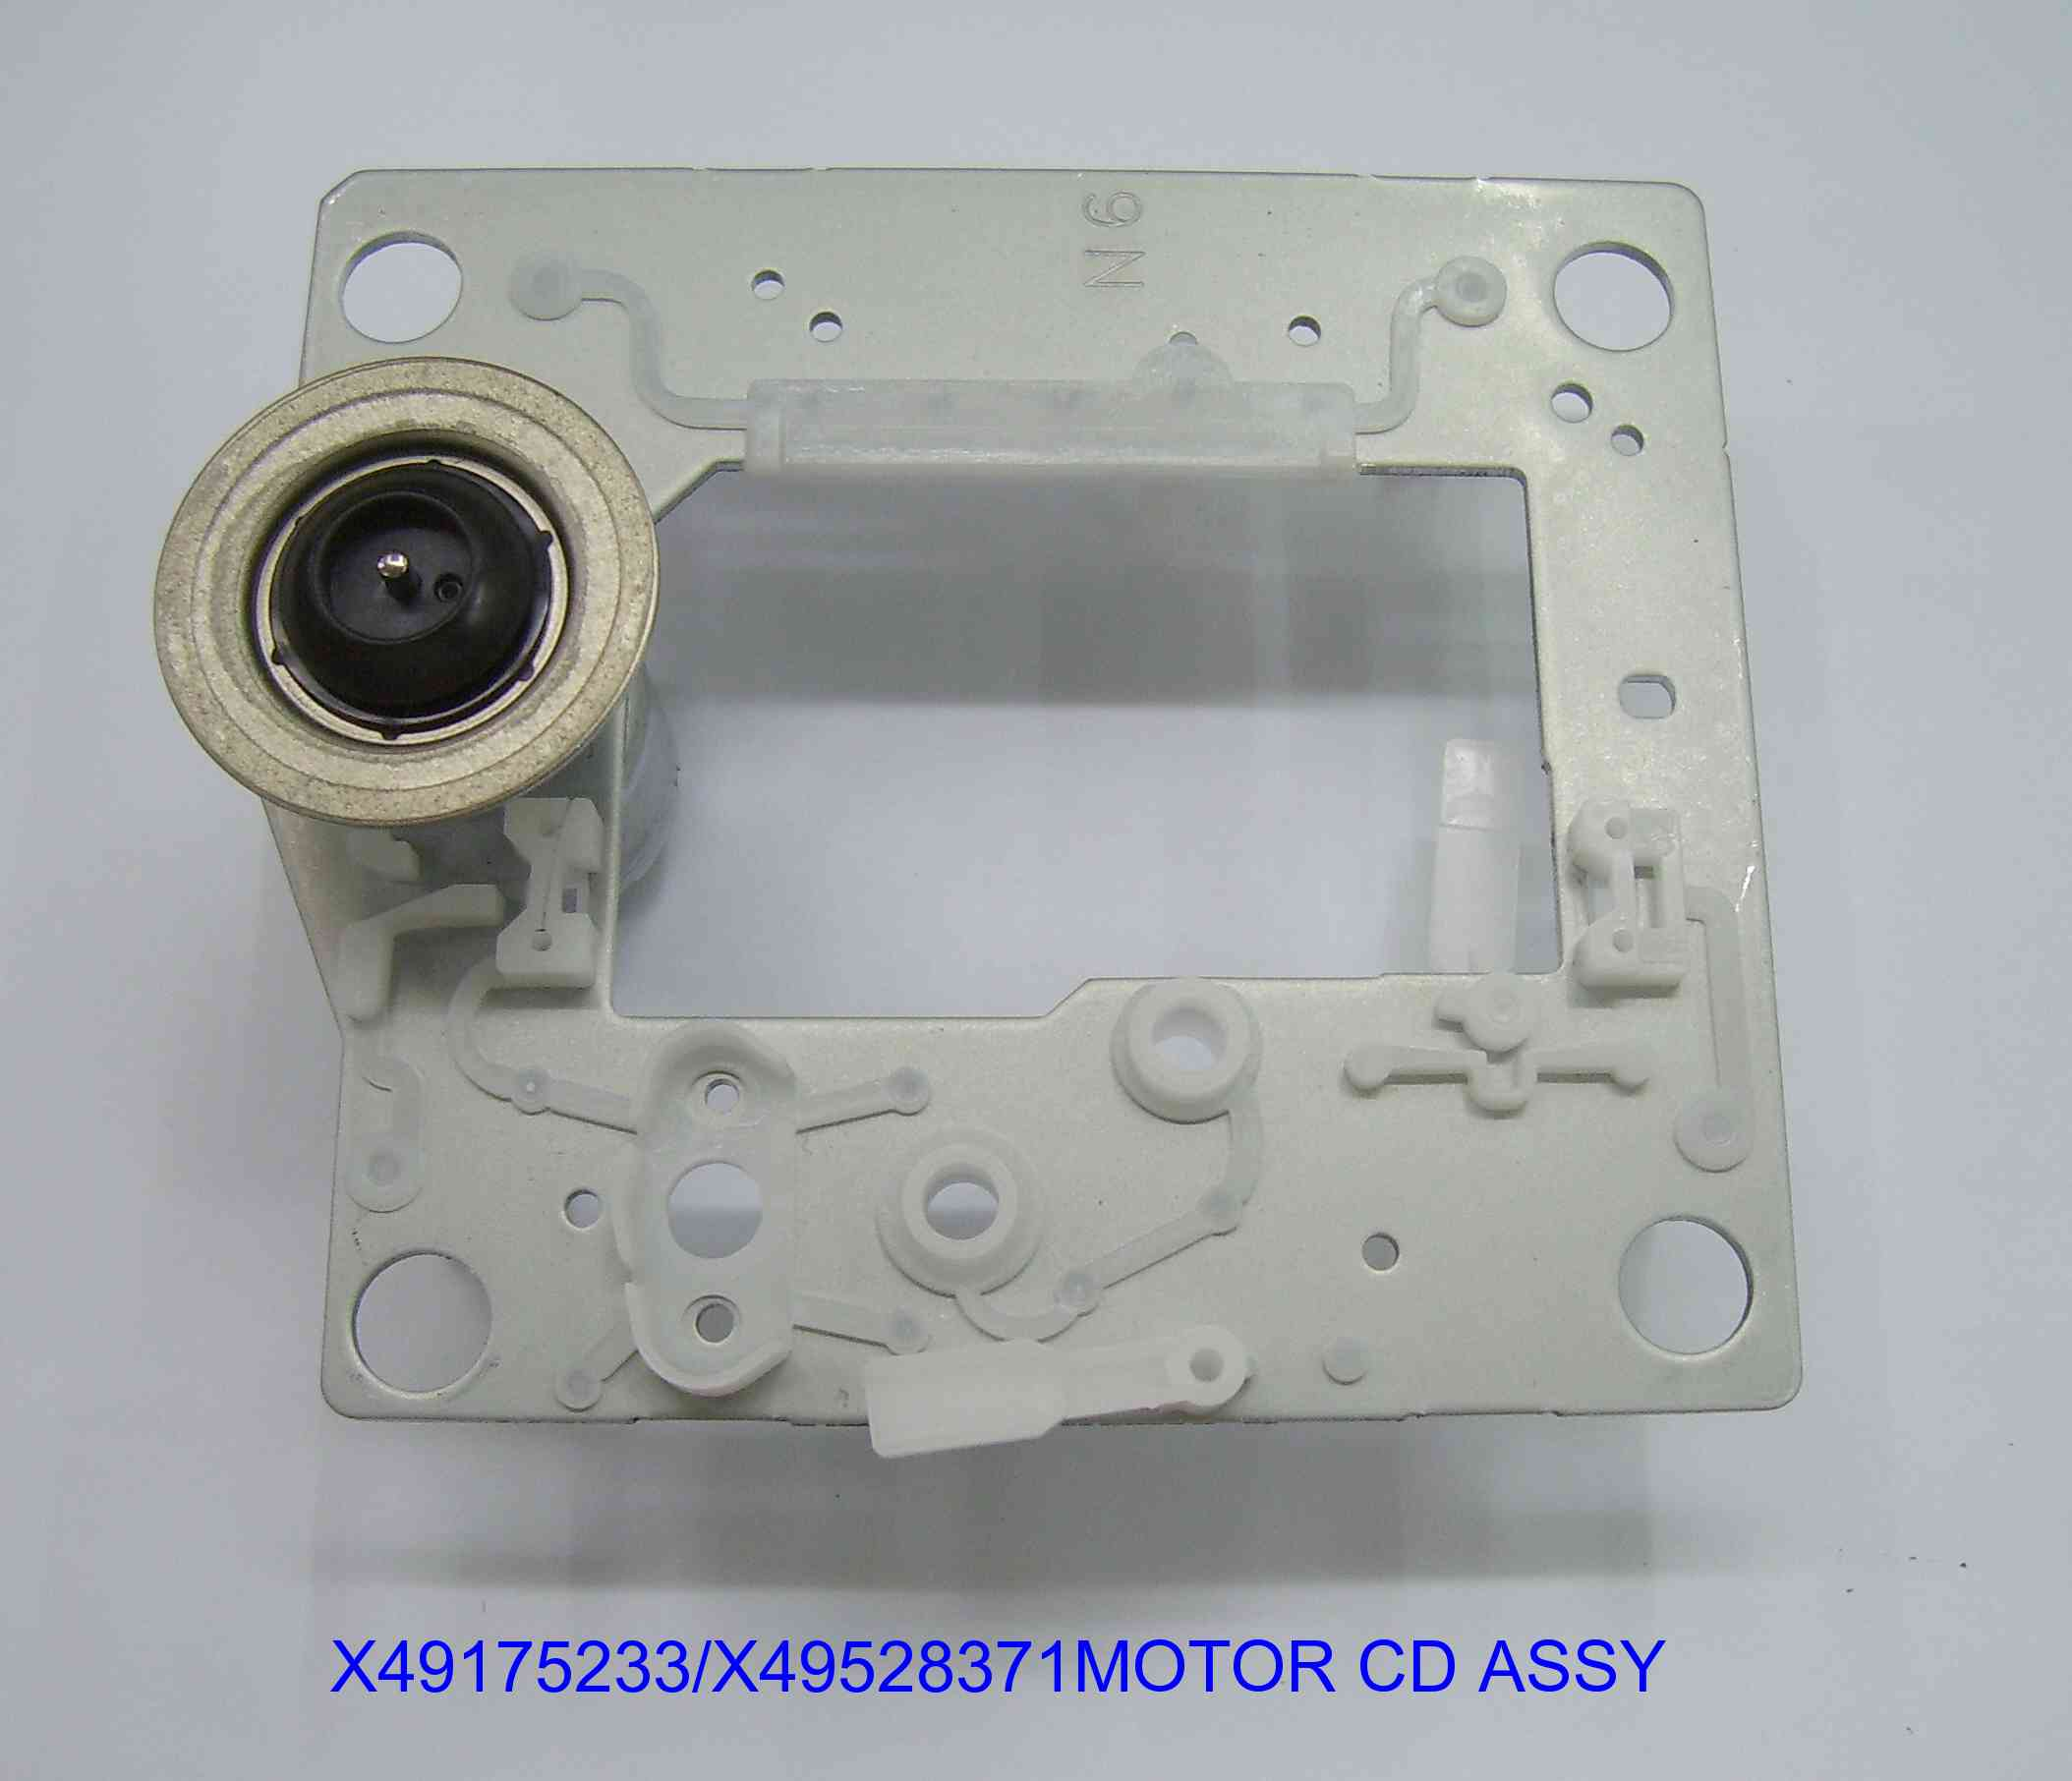 MOTOR ASSY SPINDLE X49528371